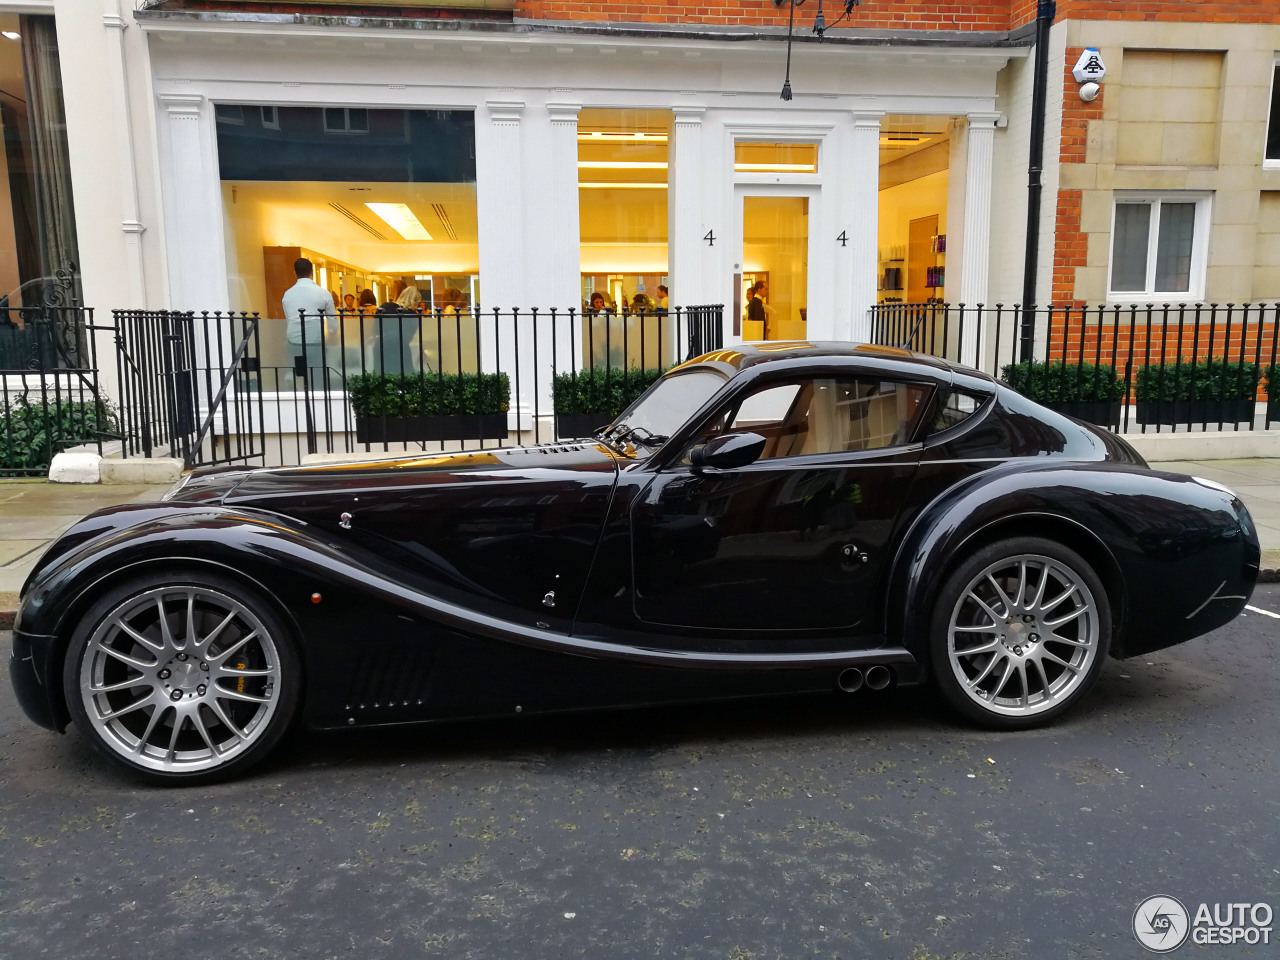 morgan aero 8 supersports 8 february 2018 autogespot. Black Bedroom Furniture Sets. Home Design Ideas